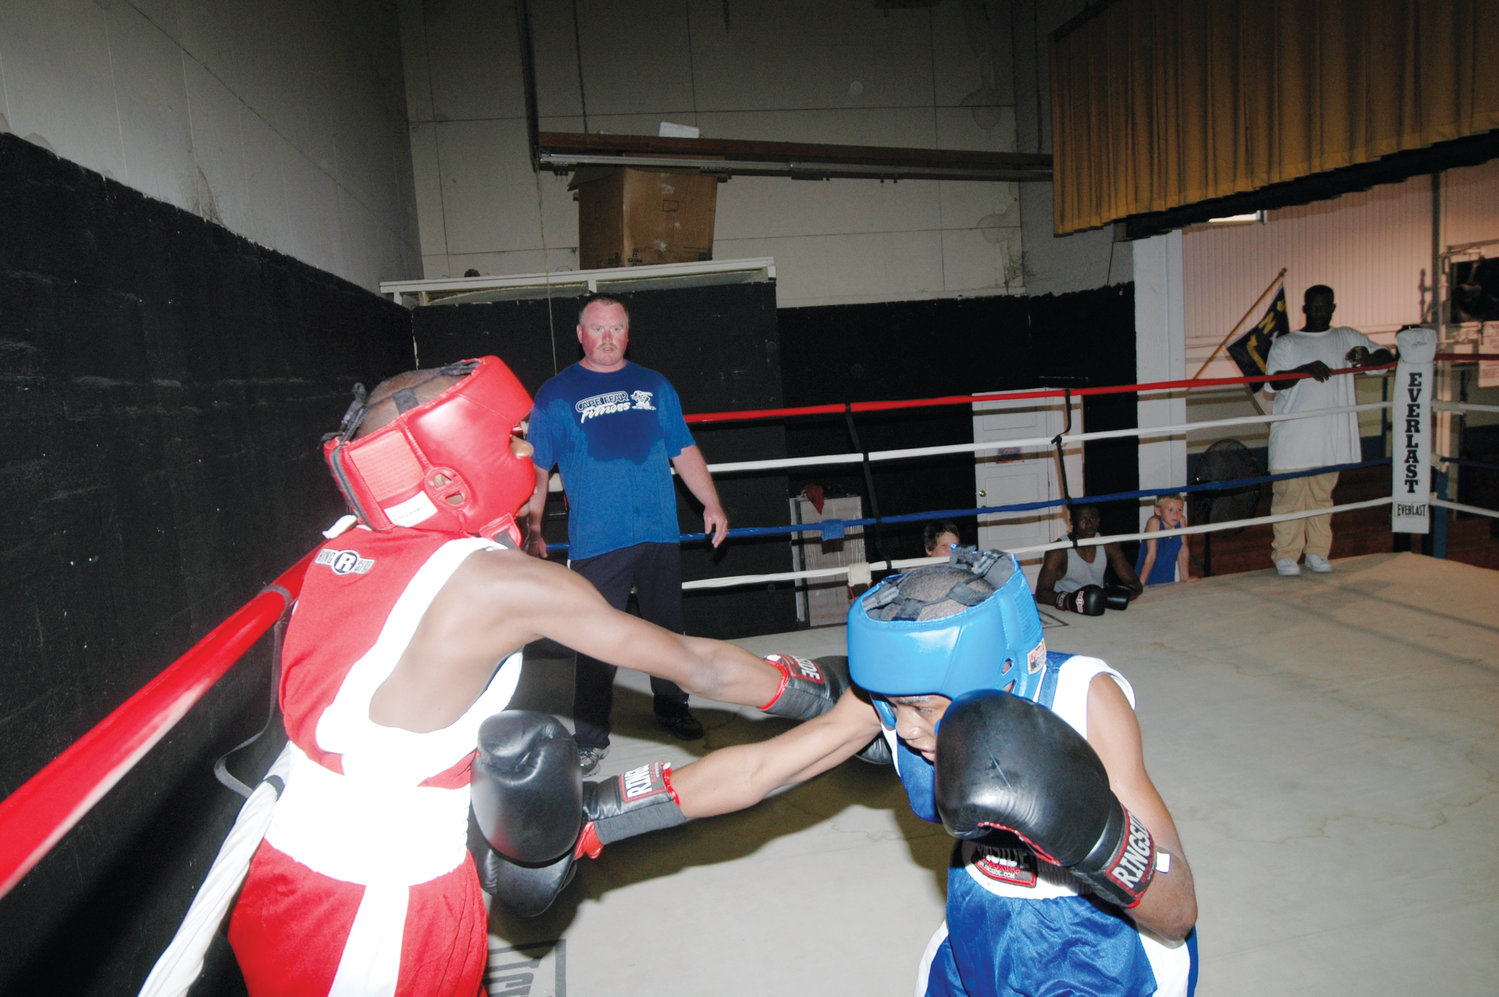 Harnett County Sheriff's Office PAL program director Mark Hornsby supervises as two boys spar in the boxing ring. Hornsby helped organize the Christy Martin Title Boxing Invitational that will take place at Harnett Central High School this week.